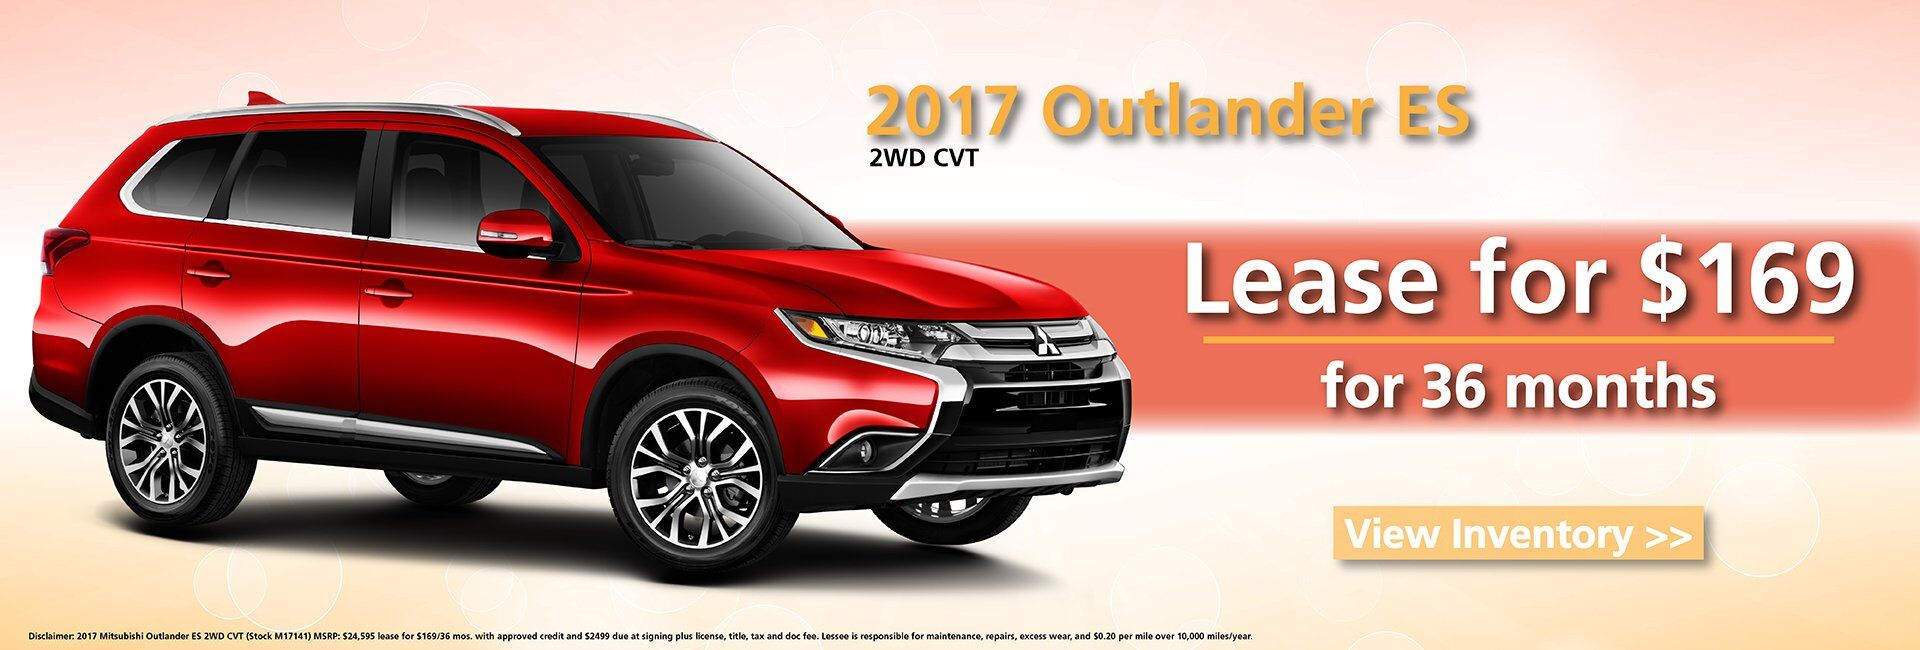 2017 Outlander IIHS Top Safety Pick+